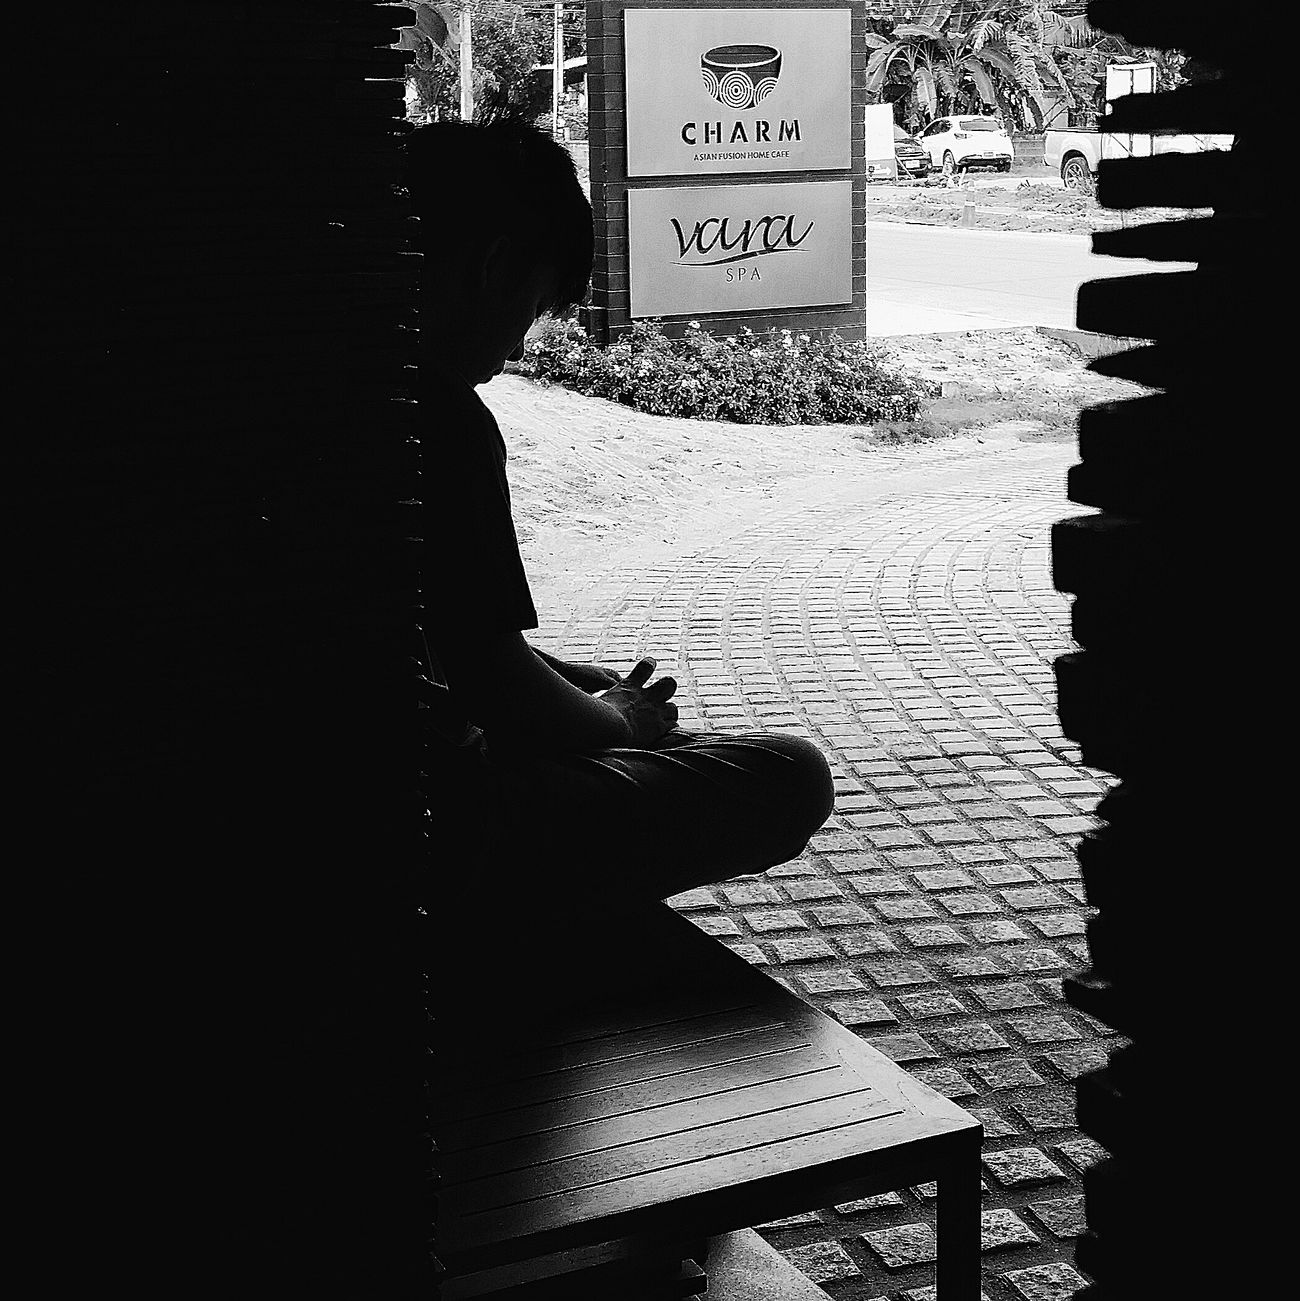 The Tourist Son Silhouette Waiting For Transport Maenam Koh Samui Thailand Travelphotography Streetphotography Bnw Bnwphotography Bnwcollection Bnw_captures Bnw_world Bnw_streetphotography Bnw_kohsamui Bnw_thailand Bnw_travel